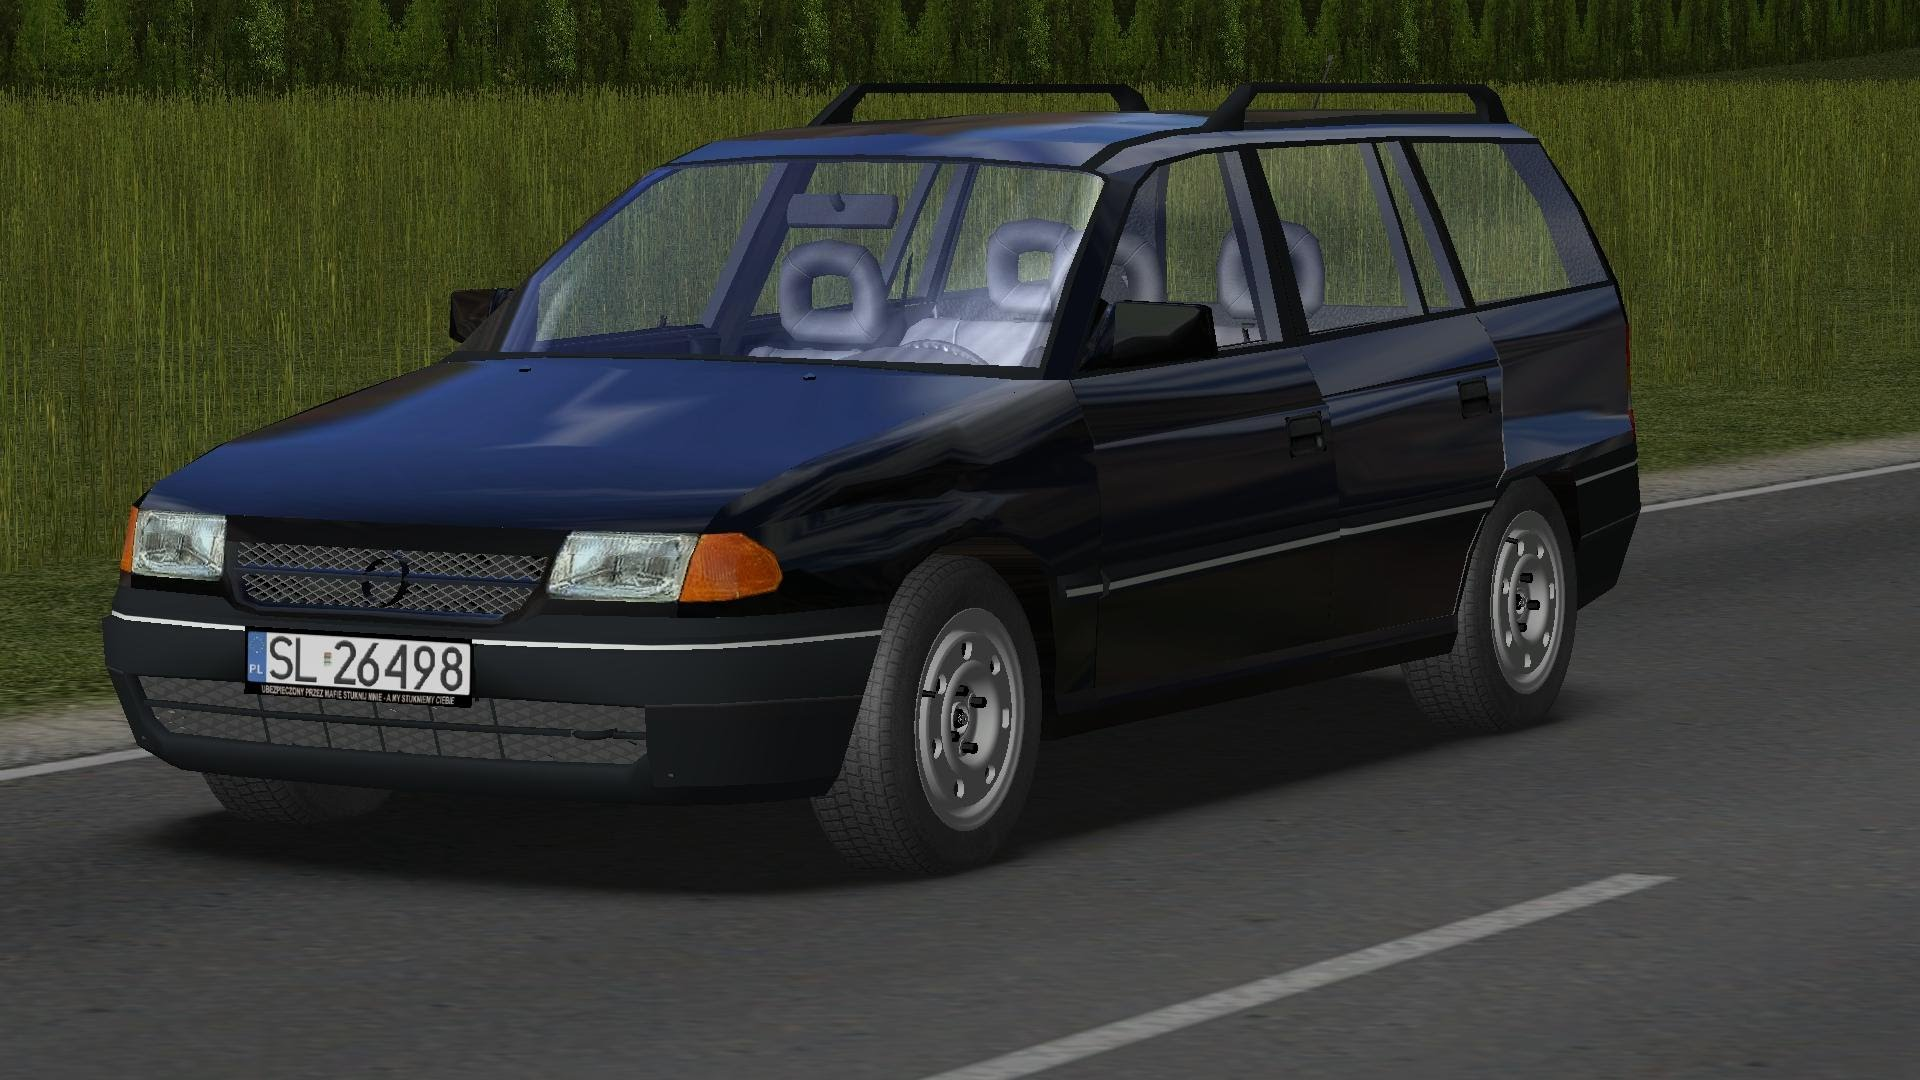 1996 opel astra f caravan pictures information and specs auto. Black Bedroom Furniture Sets. Home Design Ideas